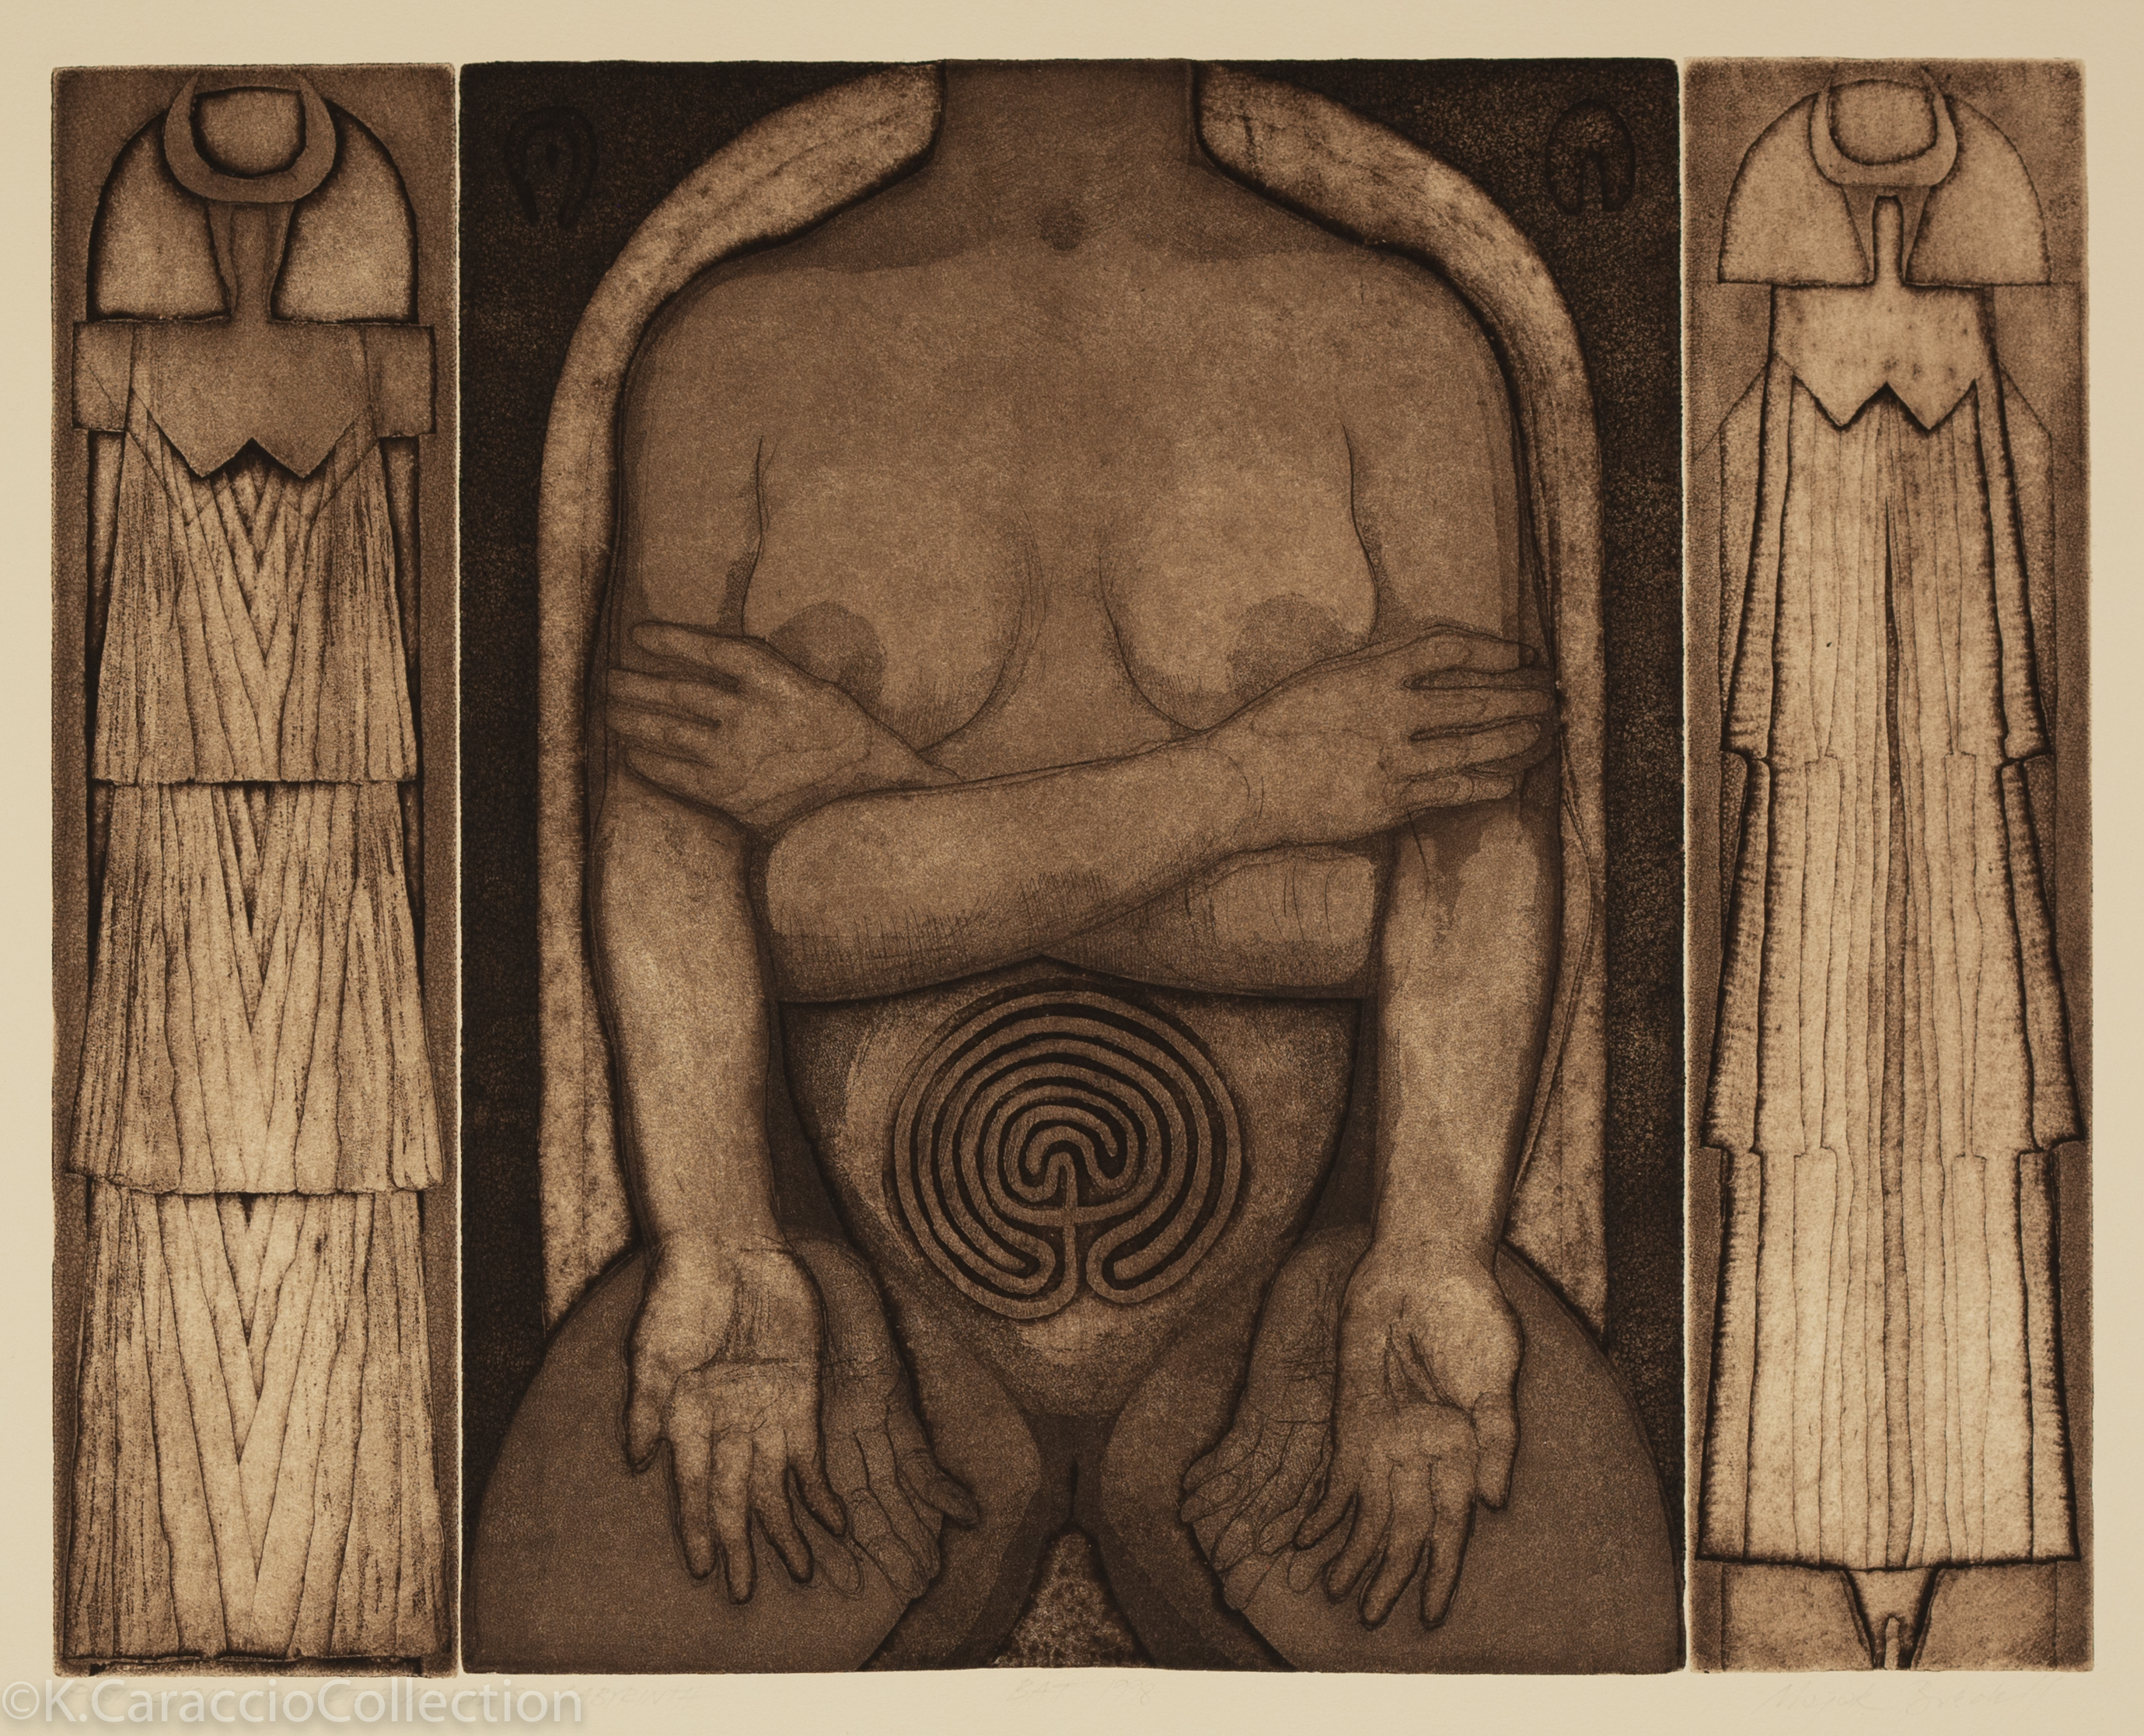 Post-Christian Alter Image - Labyrinth, 1998